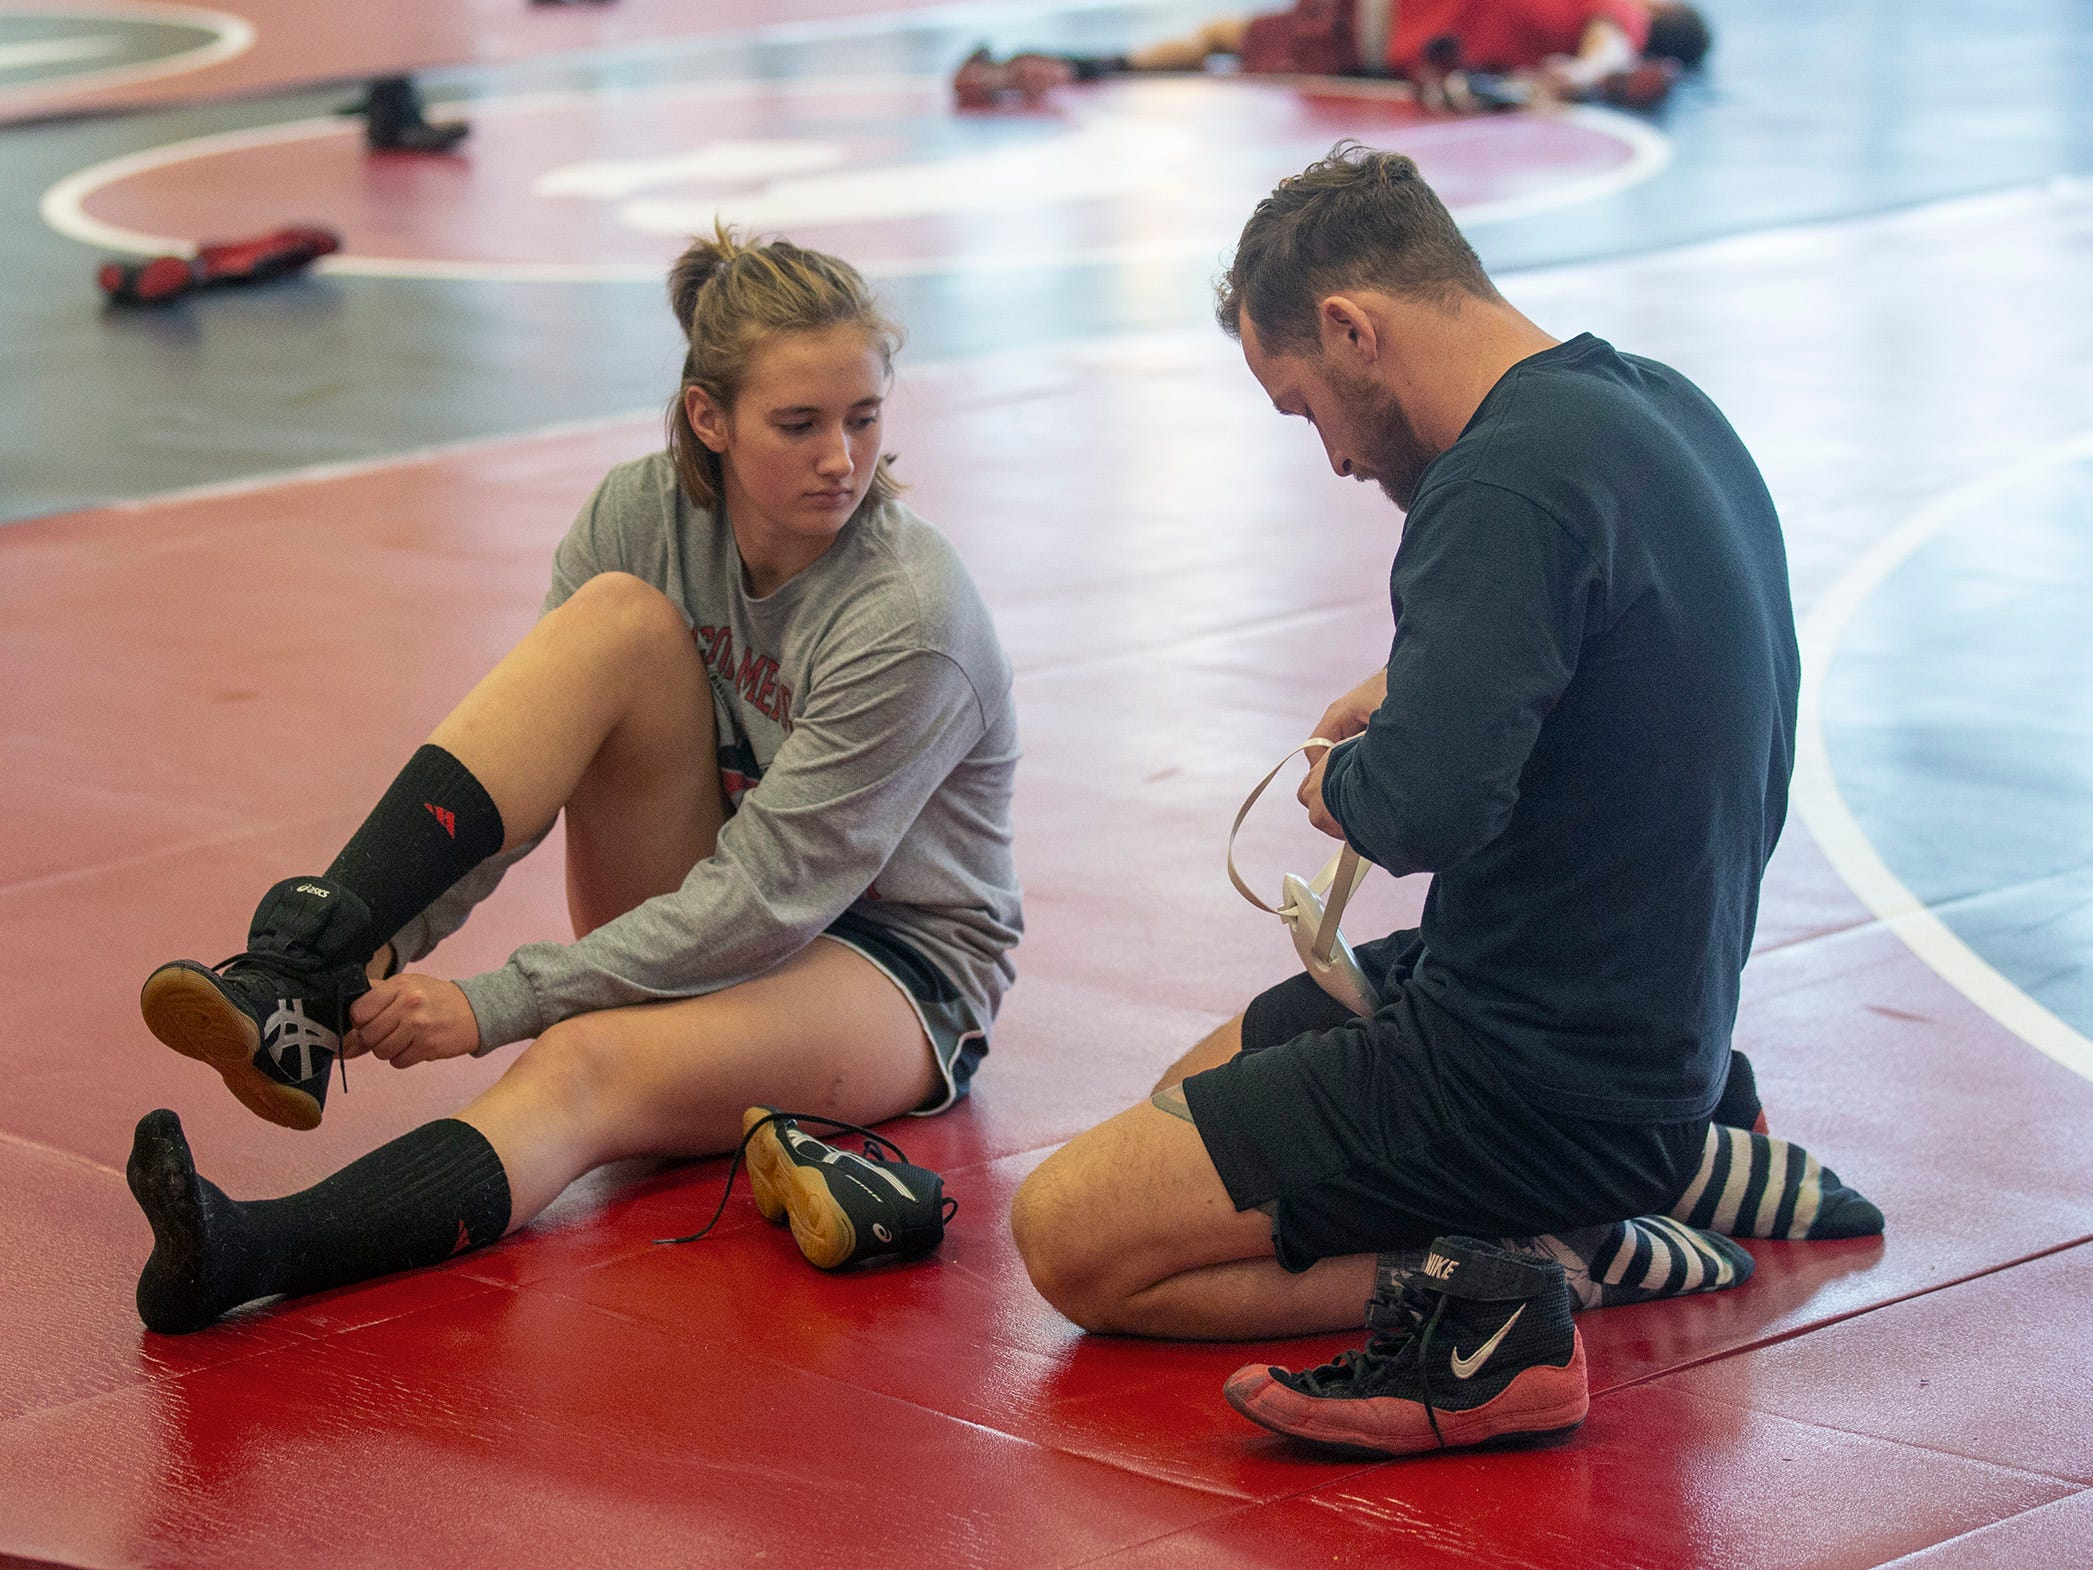 Abby Stanberry gets help with her headgear at the start of practice. NJSIAA is offering wrestling for girls this year and they will participate in an all girls tournament at the end of the season. Jackson Memorial Wrestling is fielding a full girls team this year. Boy and girls practice together although mostly match up with partners of their own sex for most drills.